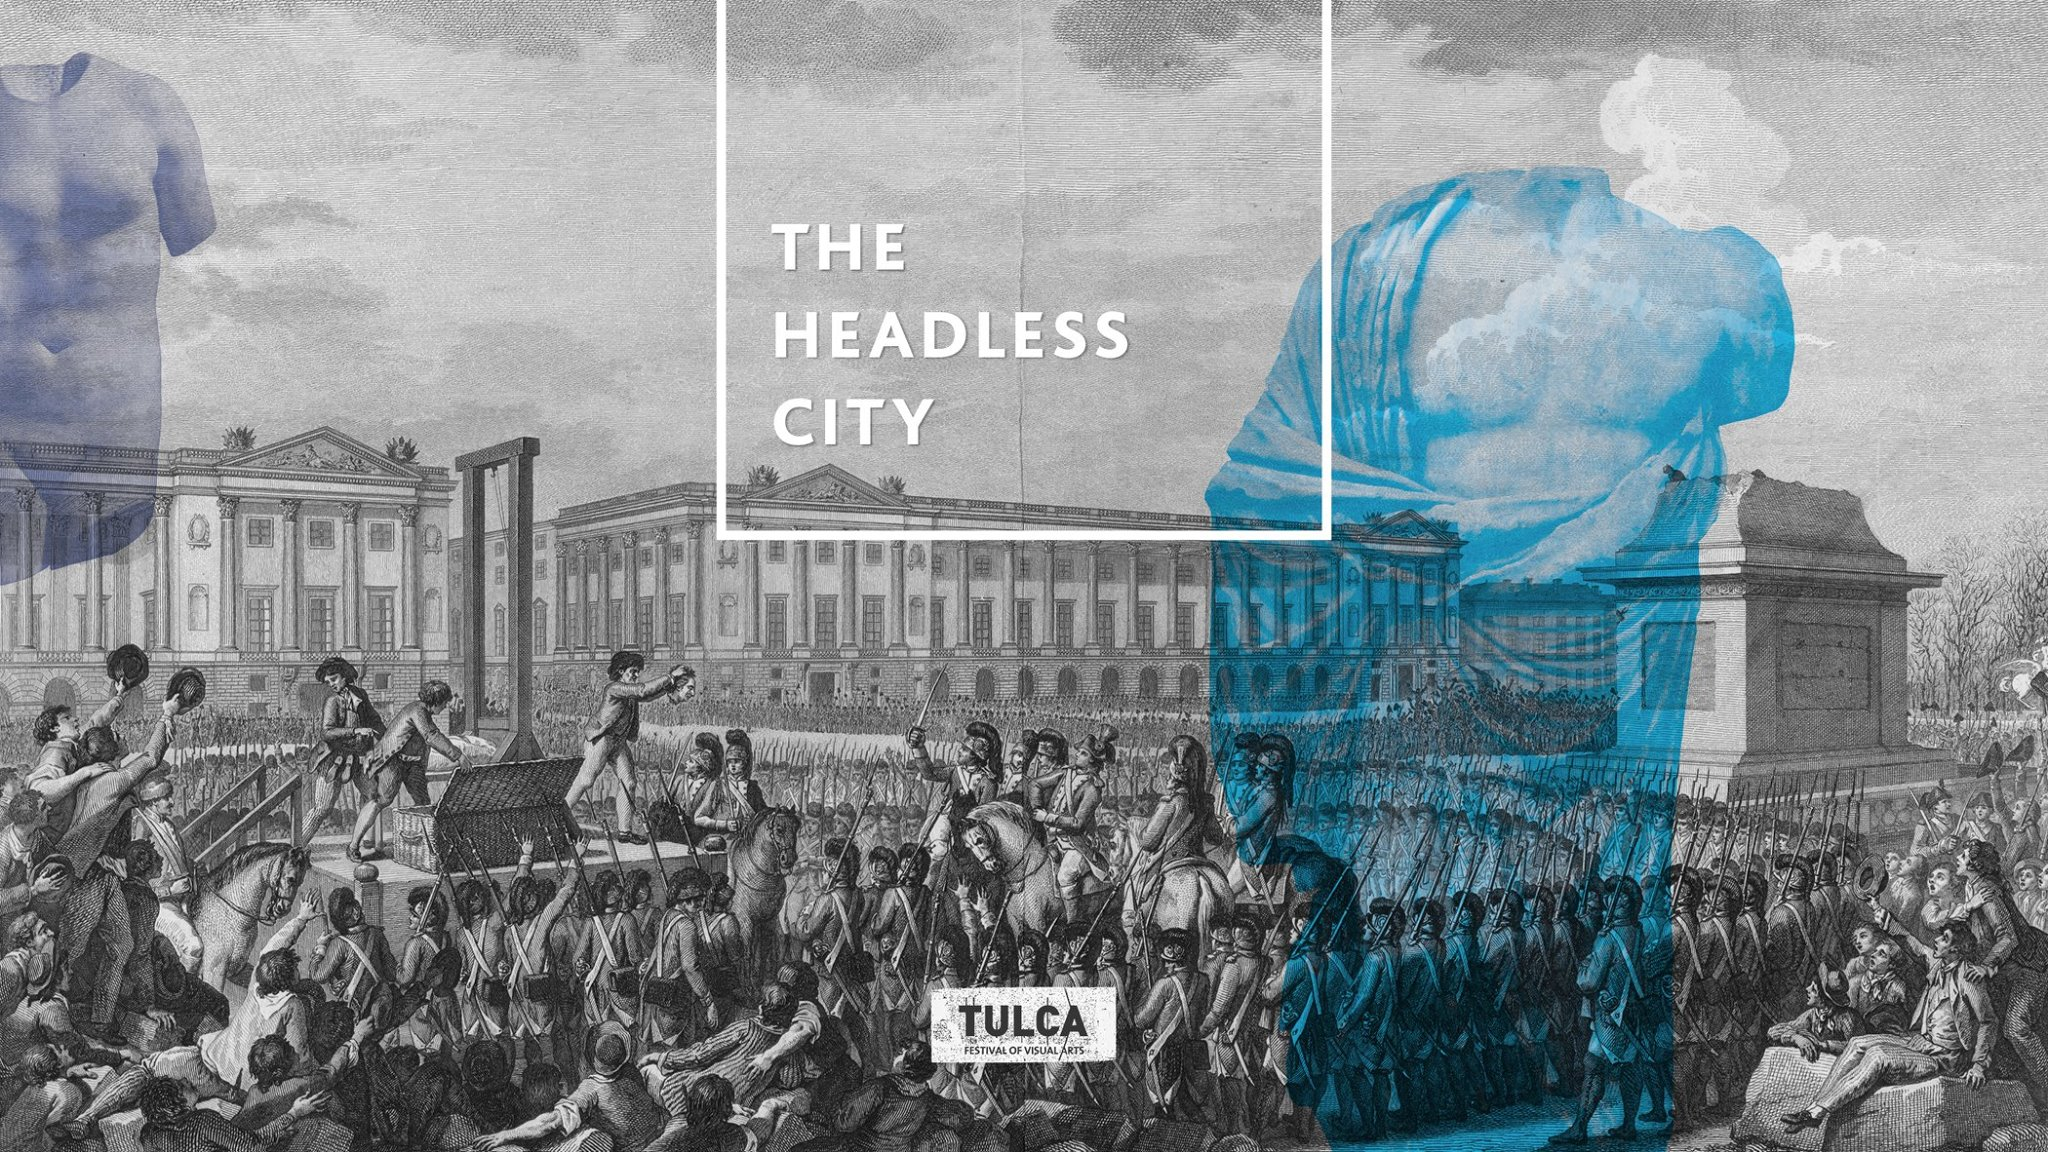 TULCA 2016: The Headless City